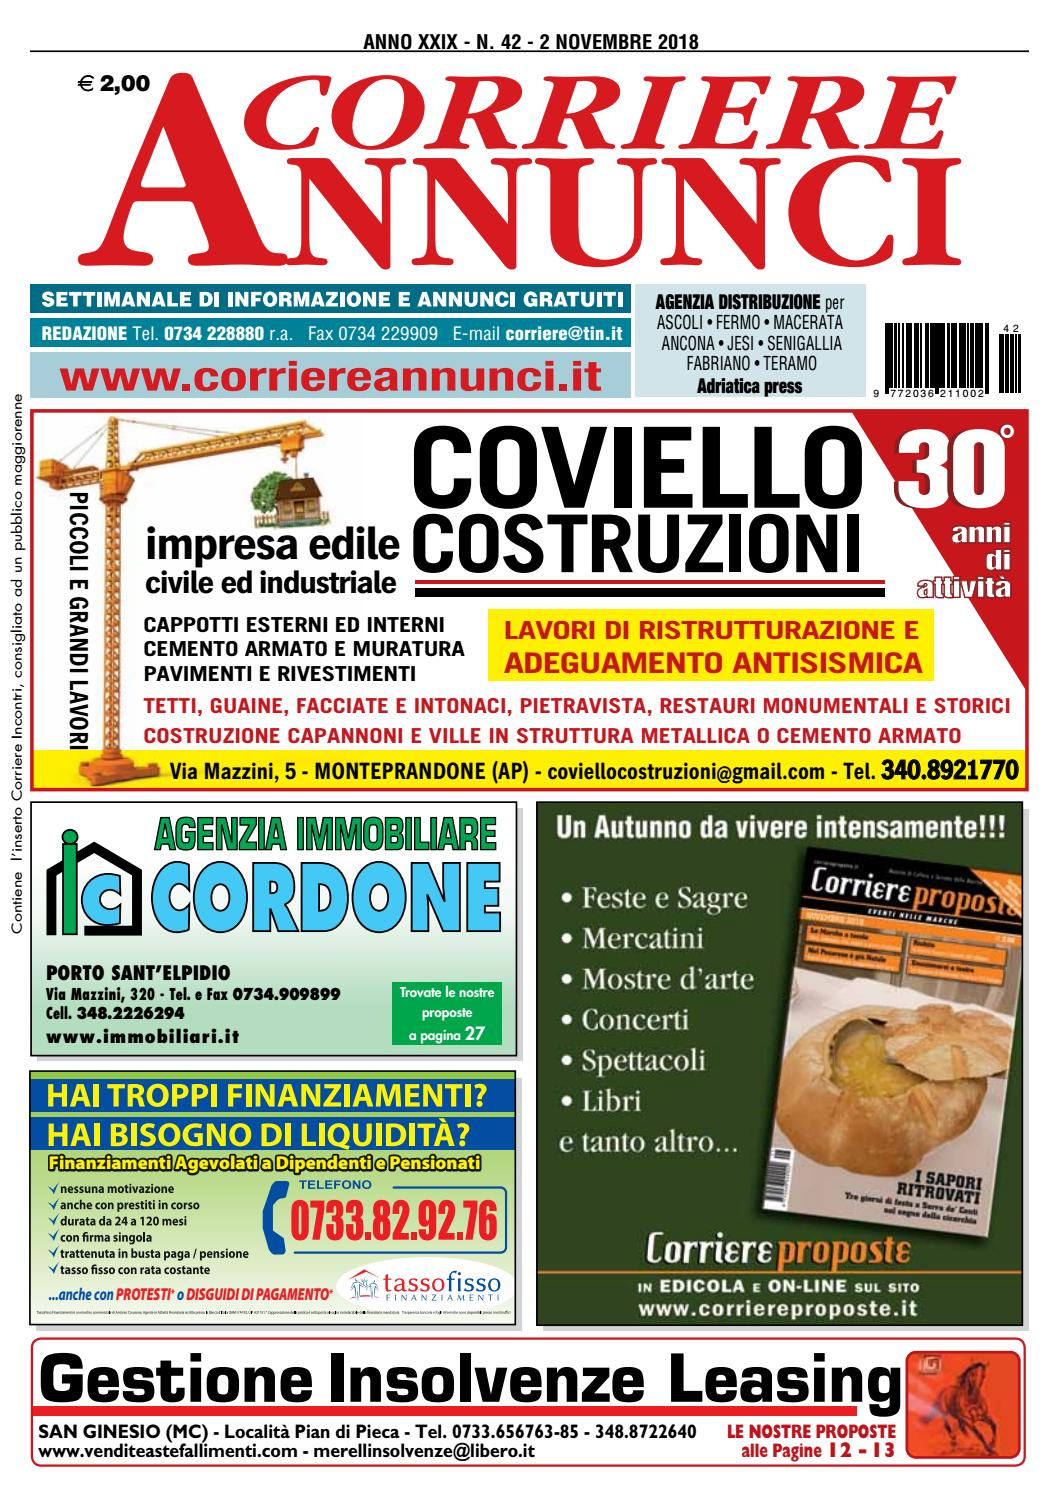 Materassi Vitha Group Corriere 42 2018